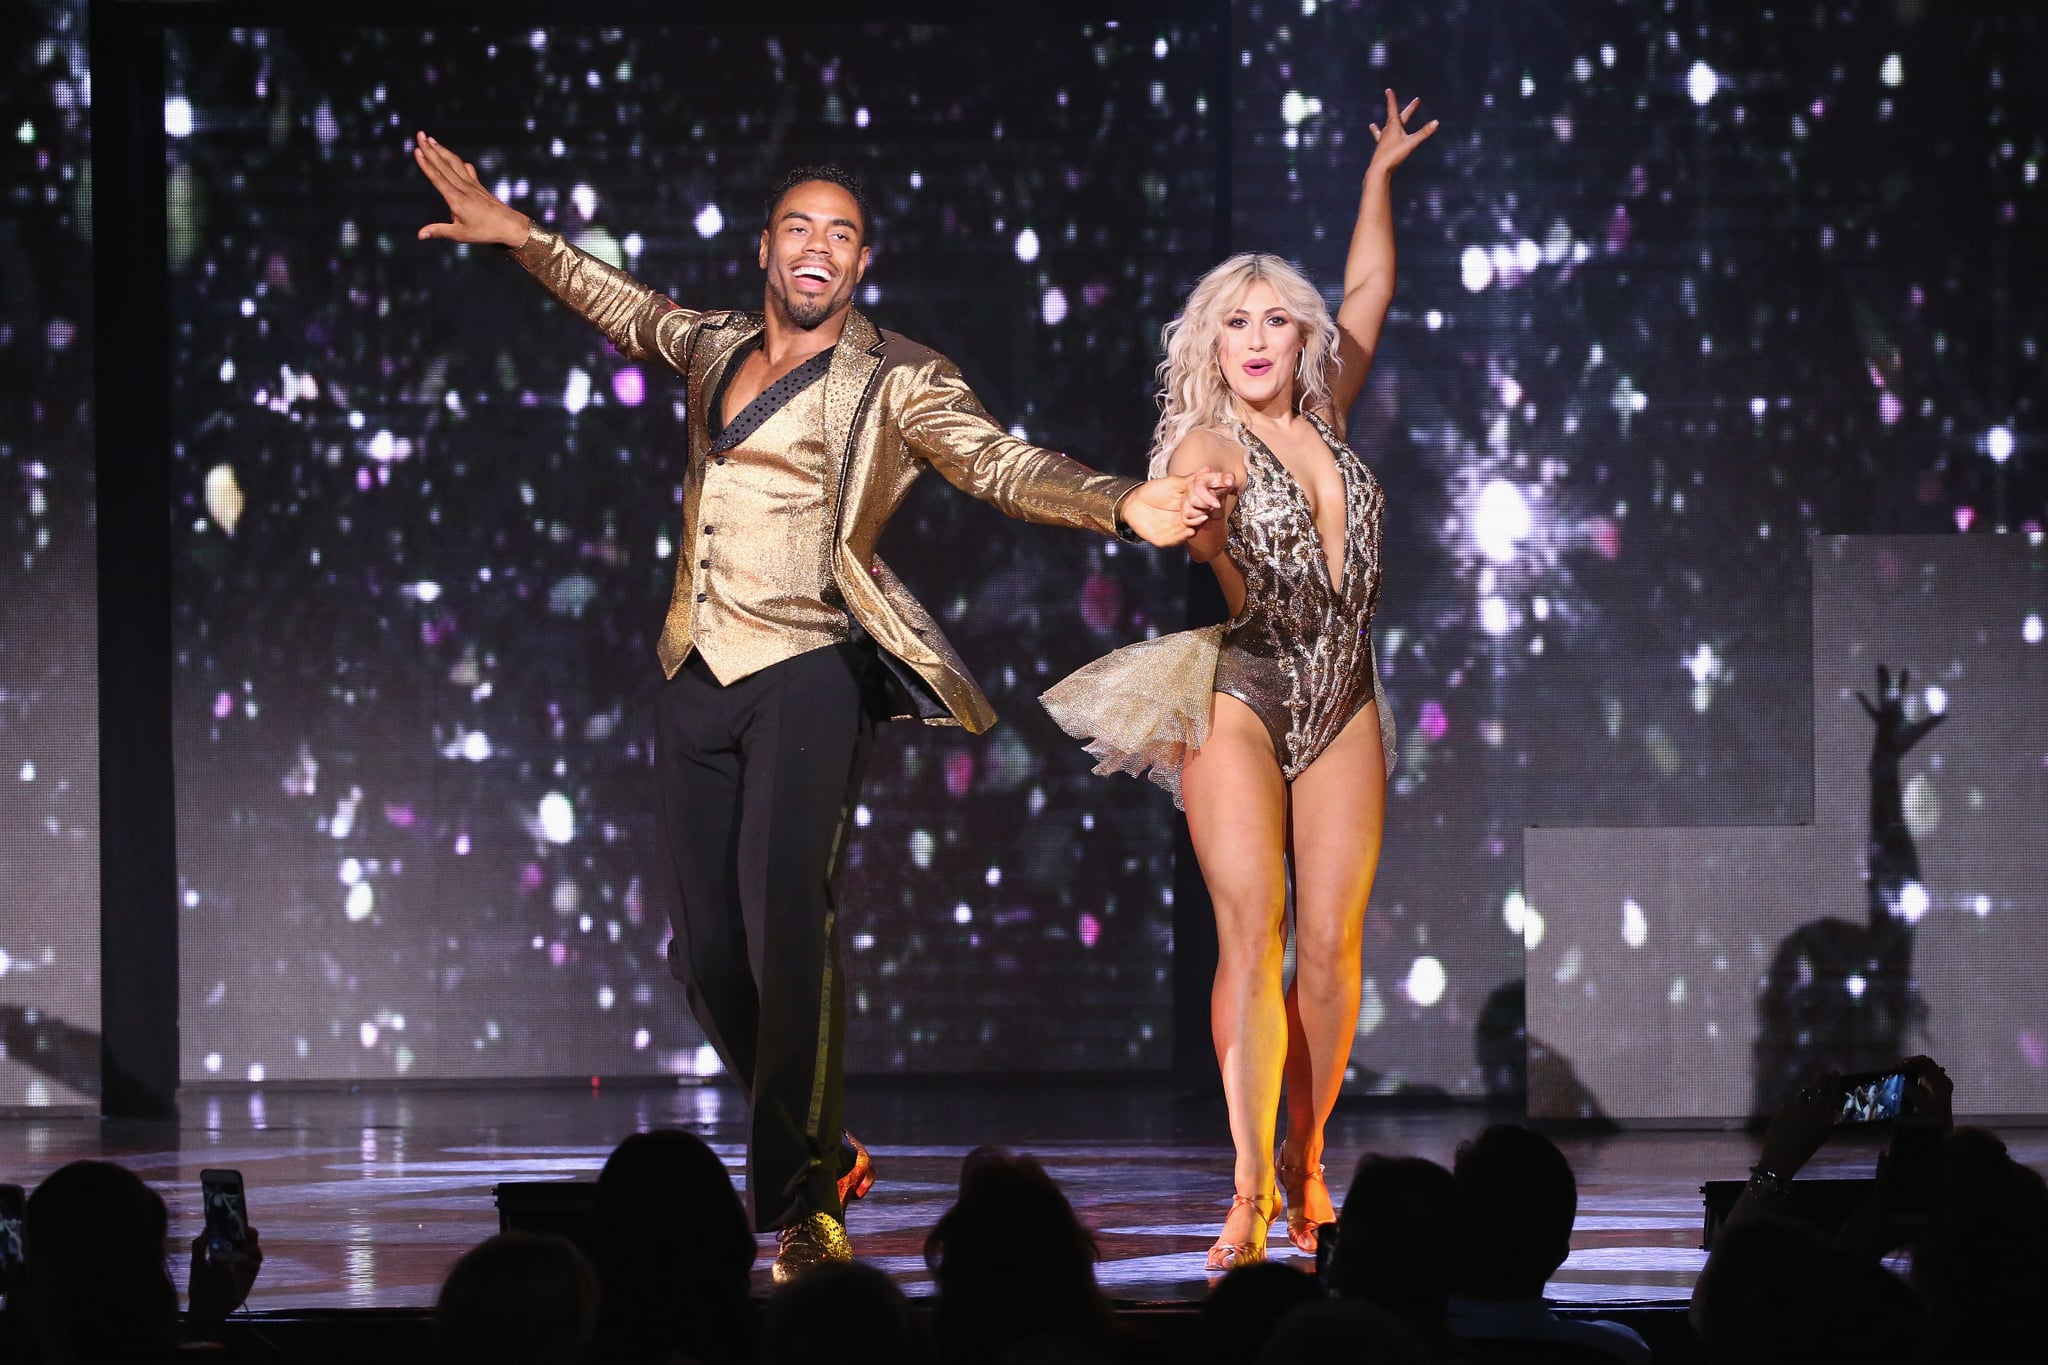 Dancing with the stars season 25 details popsugar for 1234 get on the dance floor star cast